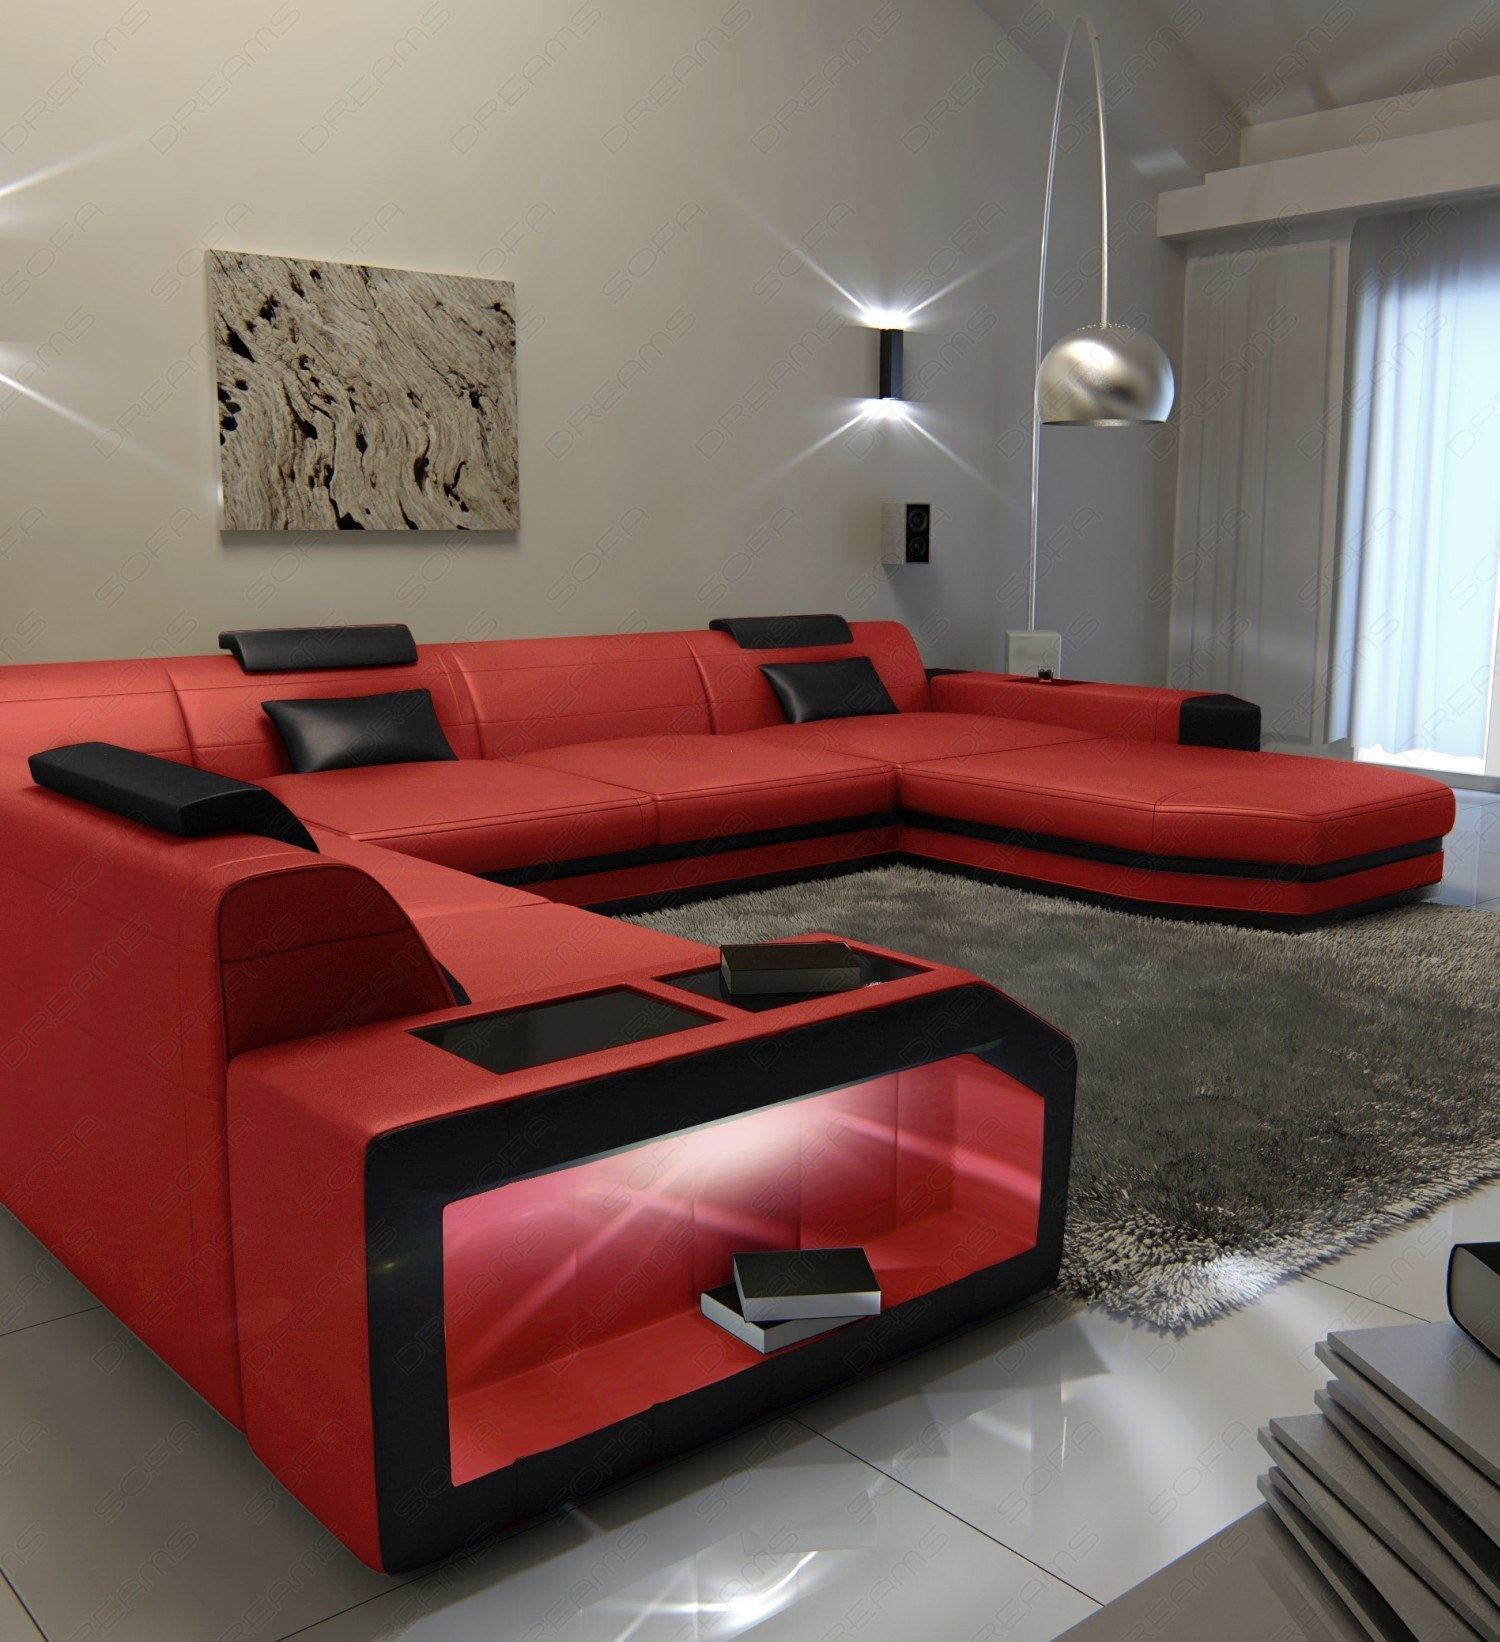 big sectional leather sofa prato xxl with led lights. Black Bedroom Furniture Sets. Home Design Ideas